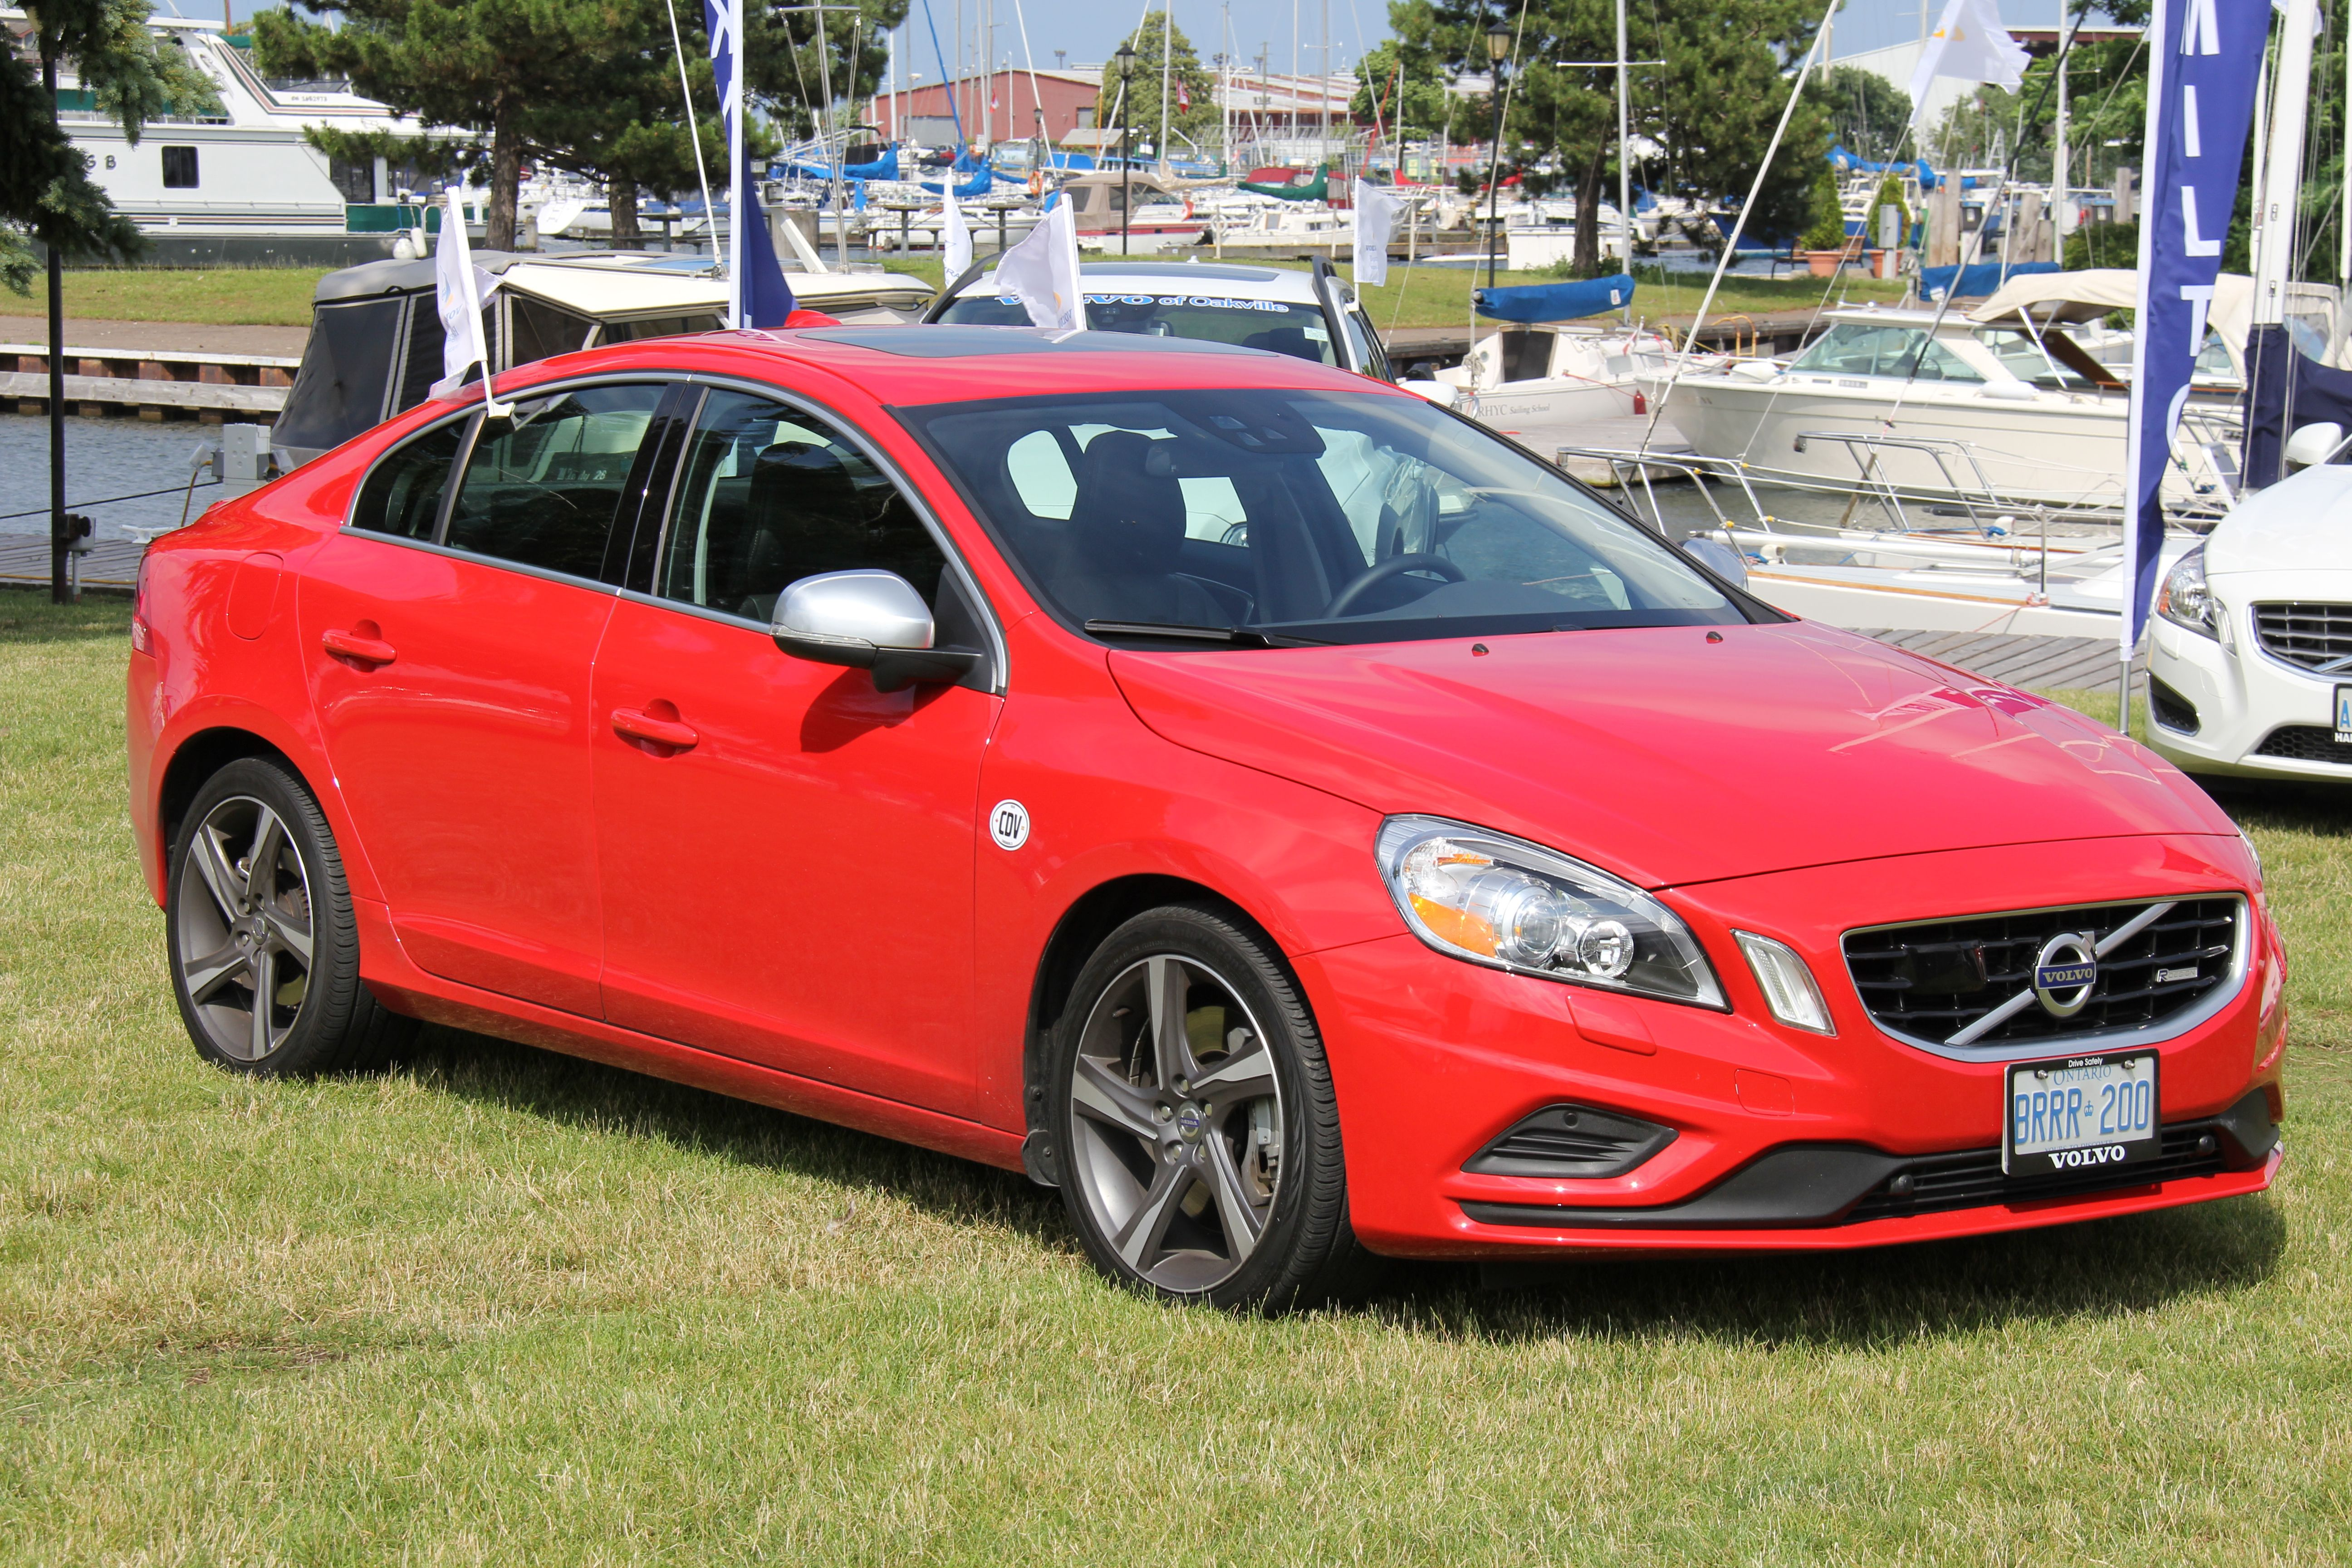 The passion red 2013 volvo s60 t6 r design was a definite crowd pleaser